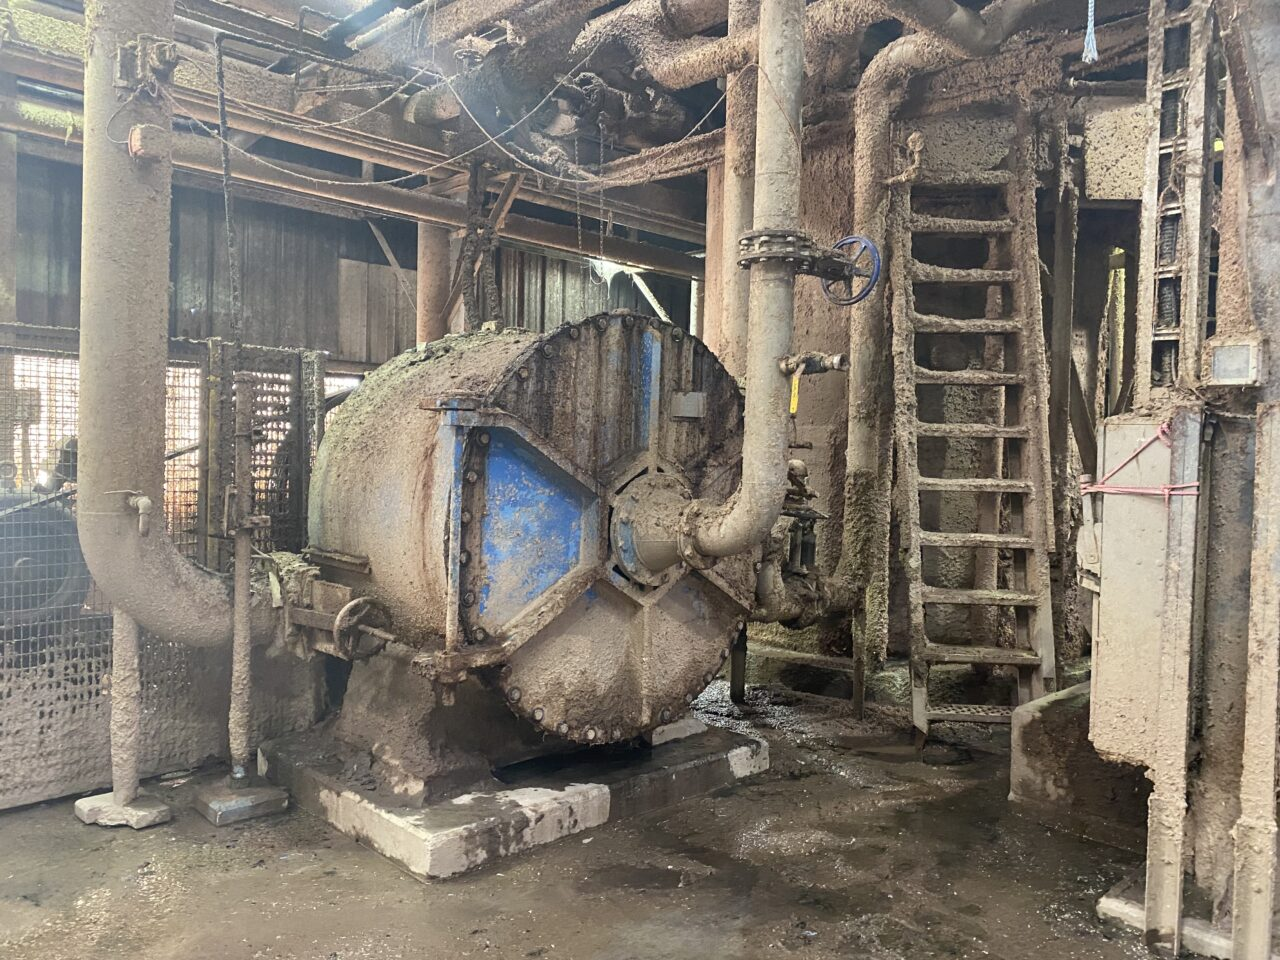 Turbo separator at a Pulp and Paper Mill, Texas, U.S